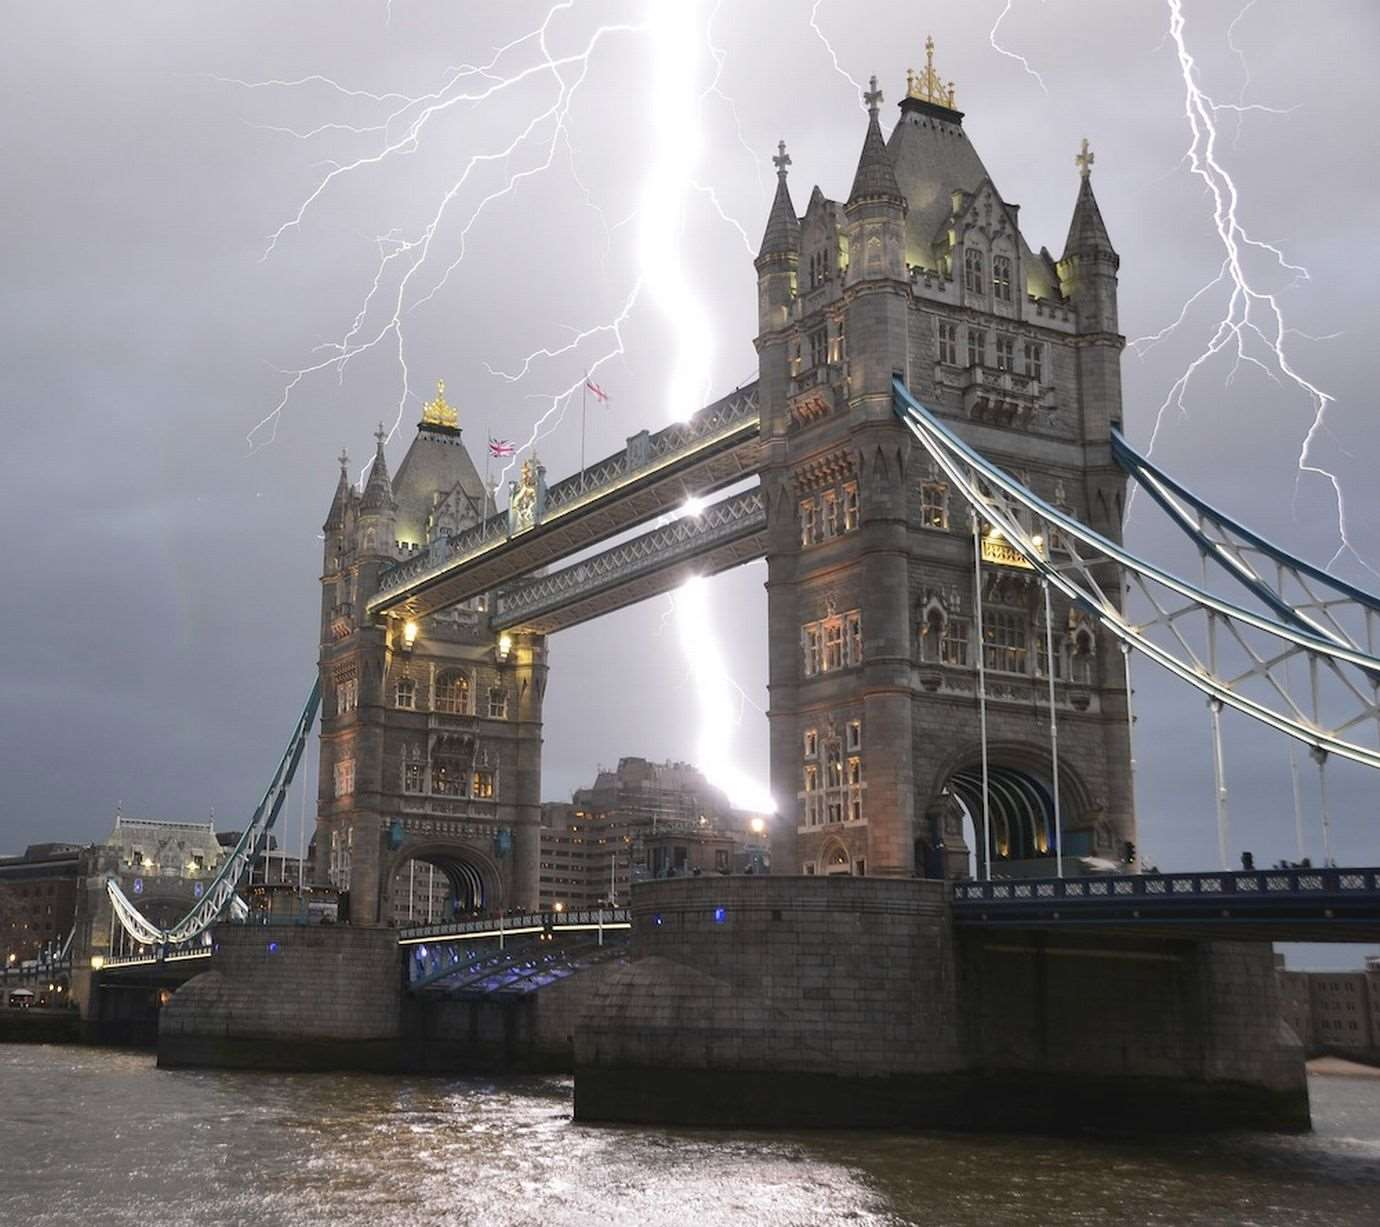 PAY-Lightning-Strike-Over-Tower-Bridge